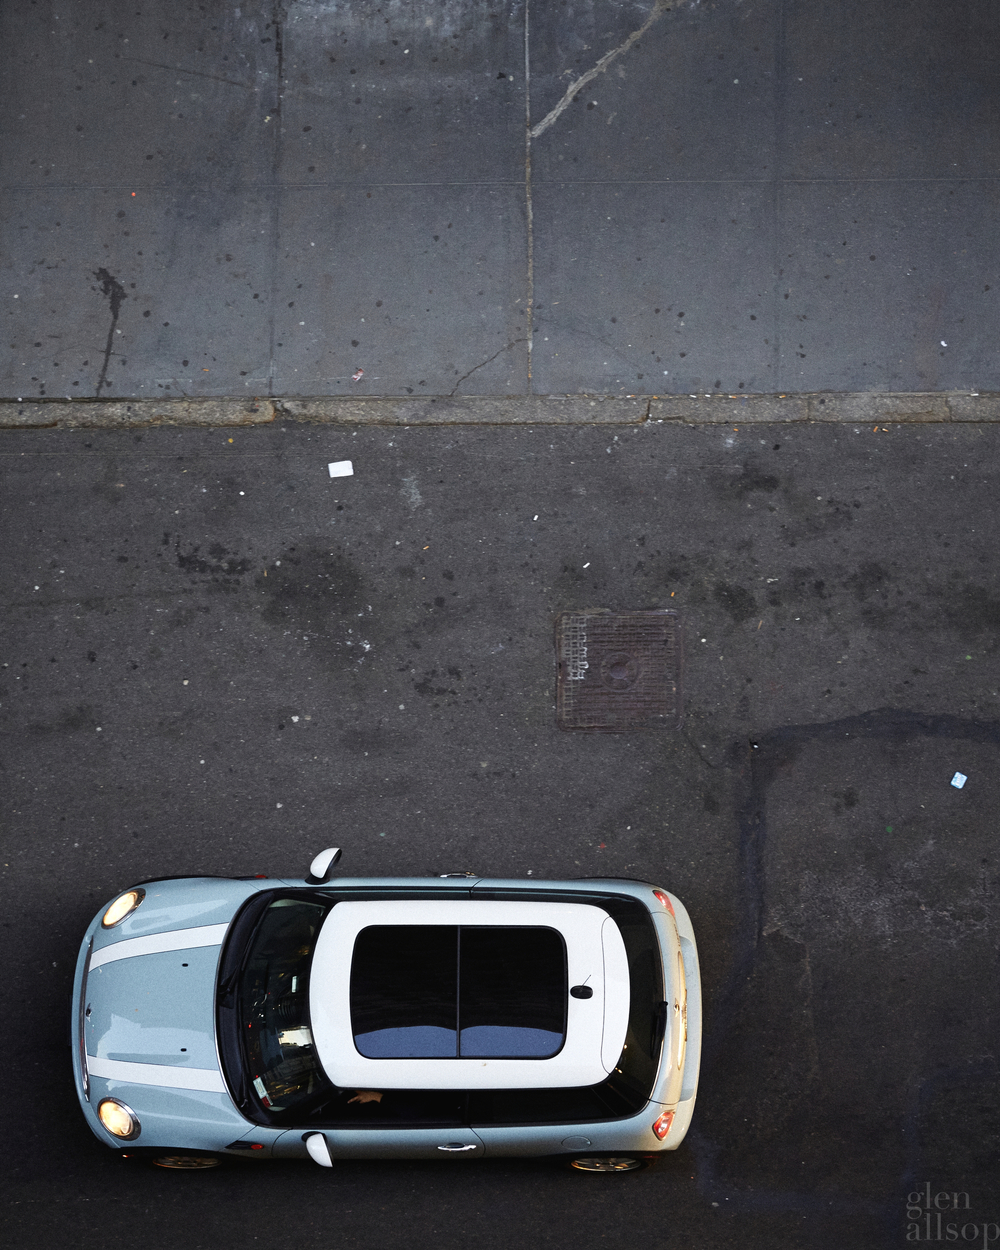 mini-new york-mini roof-bmw-teal